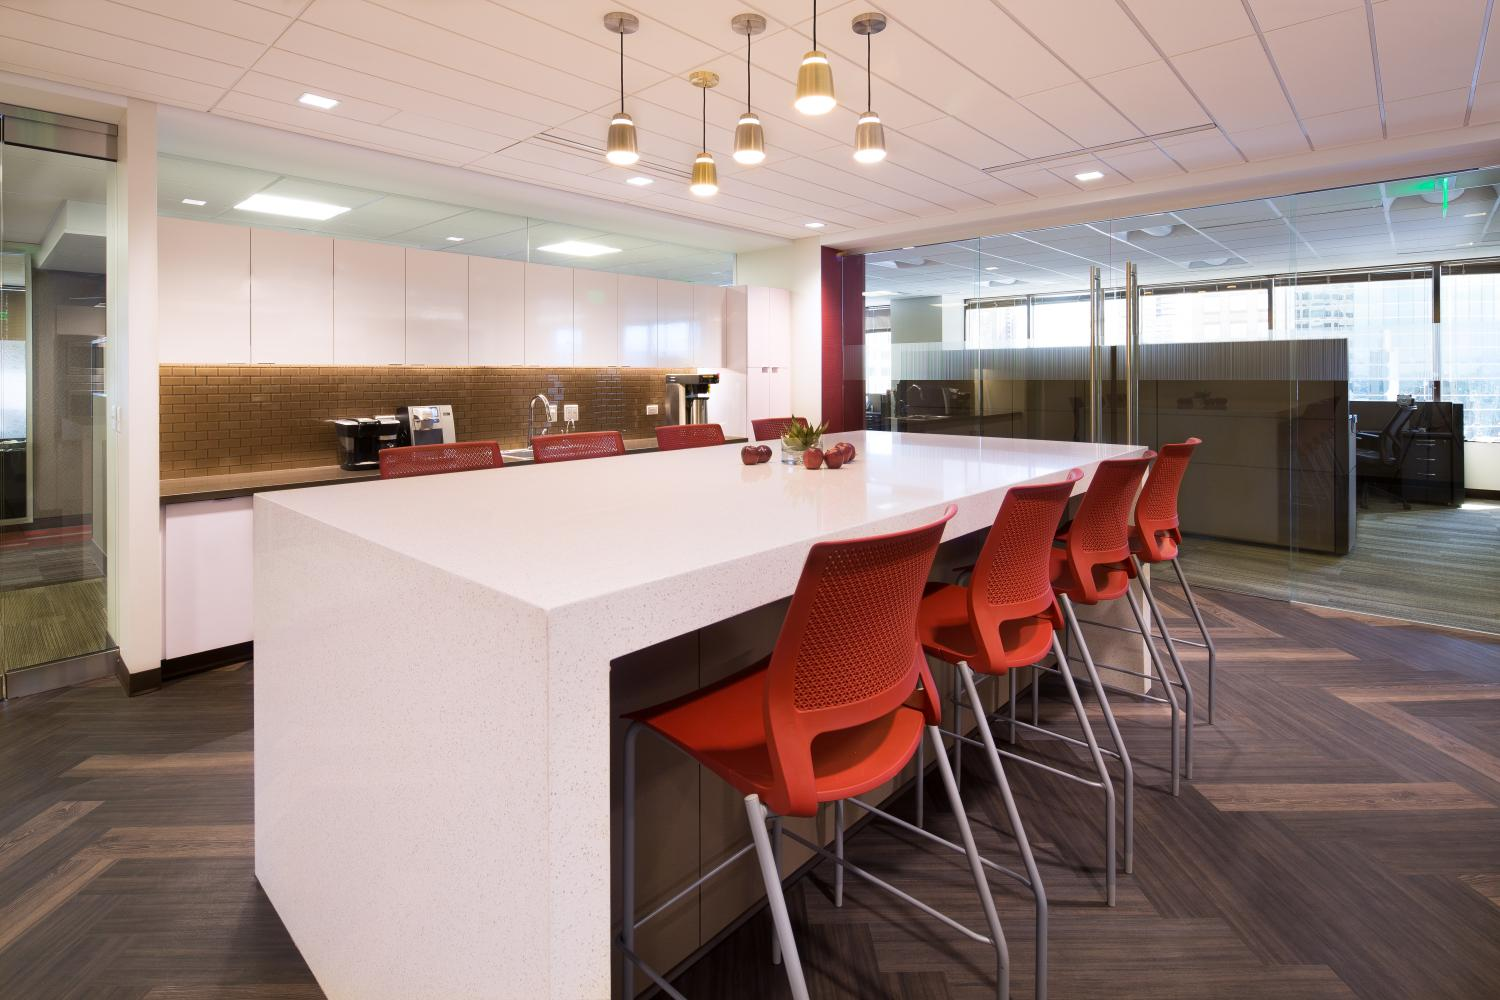 Alden Torch Financial Break Room and Collaboration Area Commercial Construction Denver Colorado